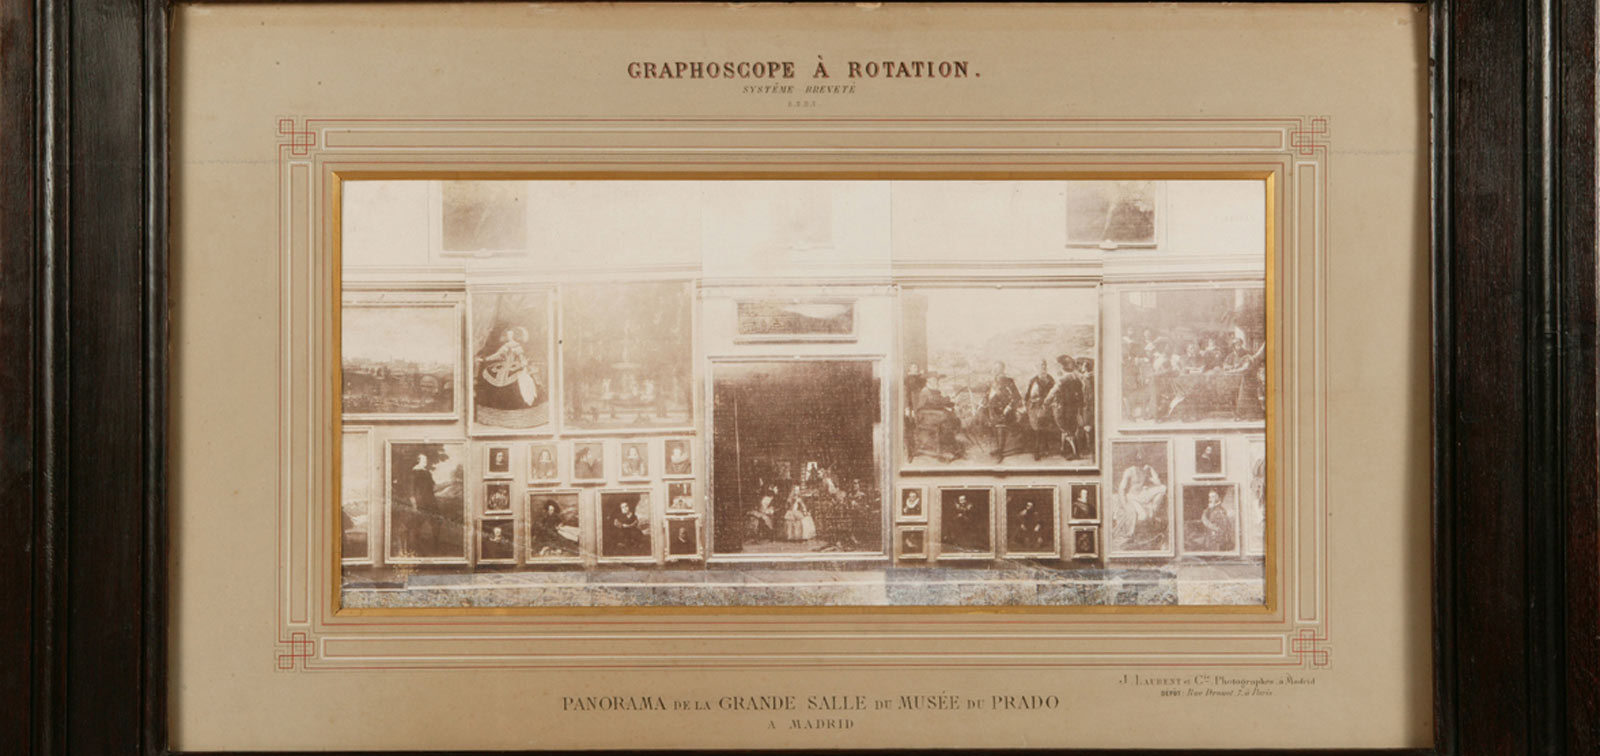 The Graphoscope